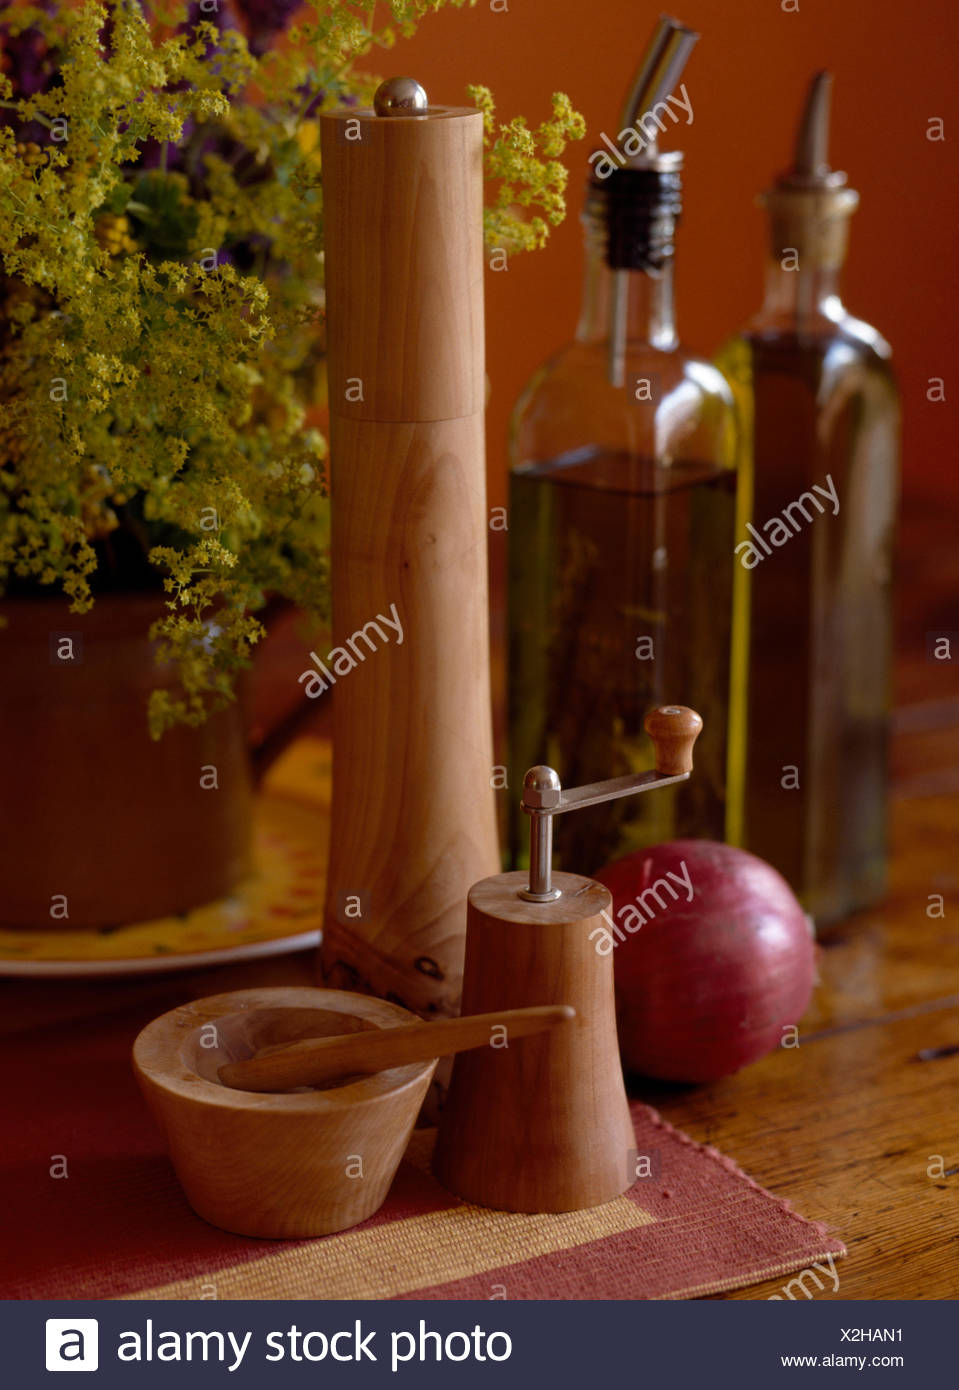 Close-up of wooden pepper mills and salt pot - Stock Image